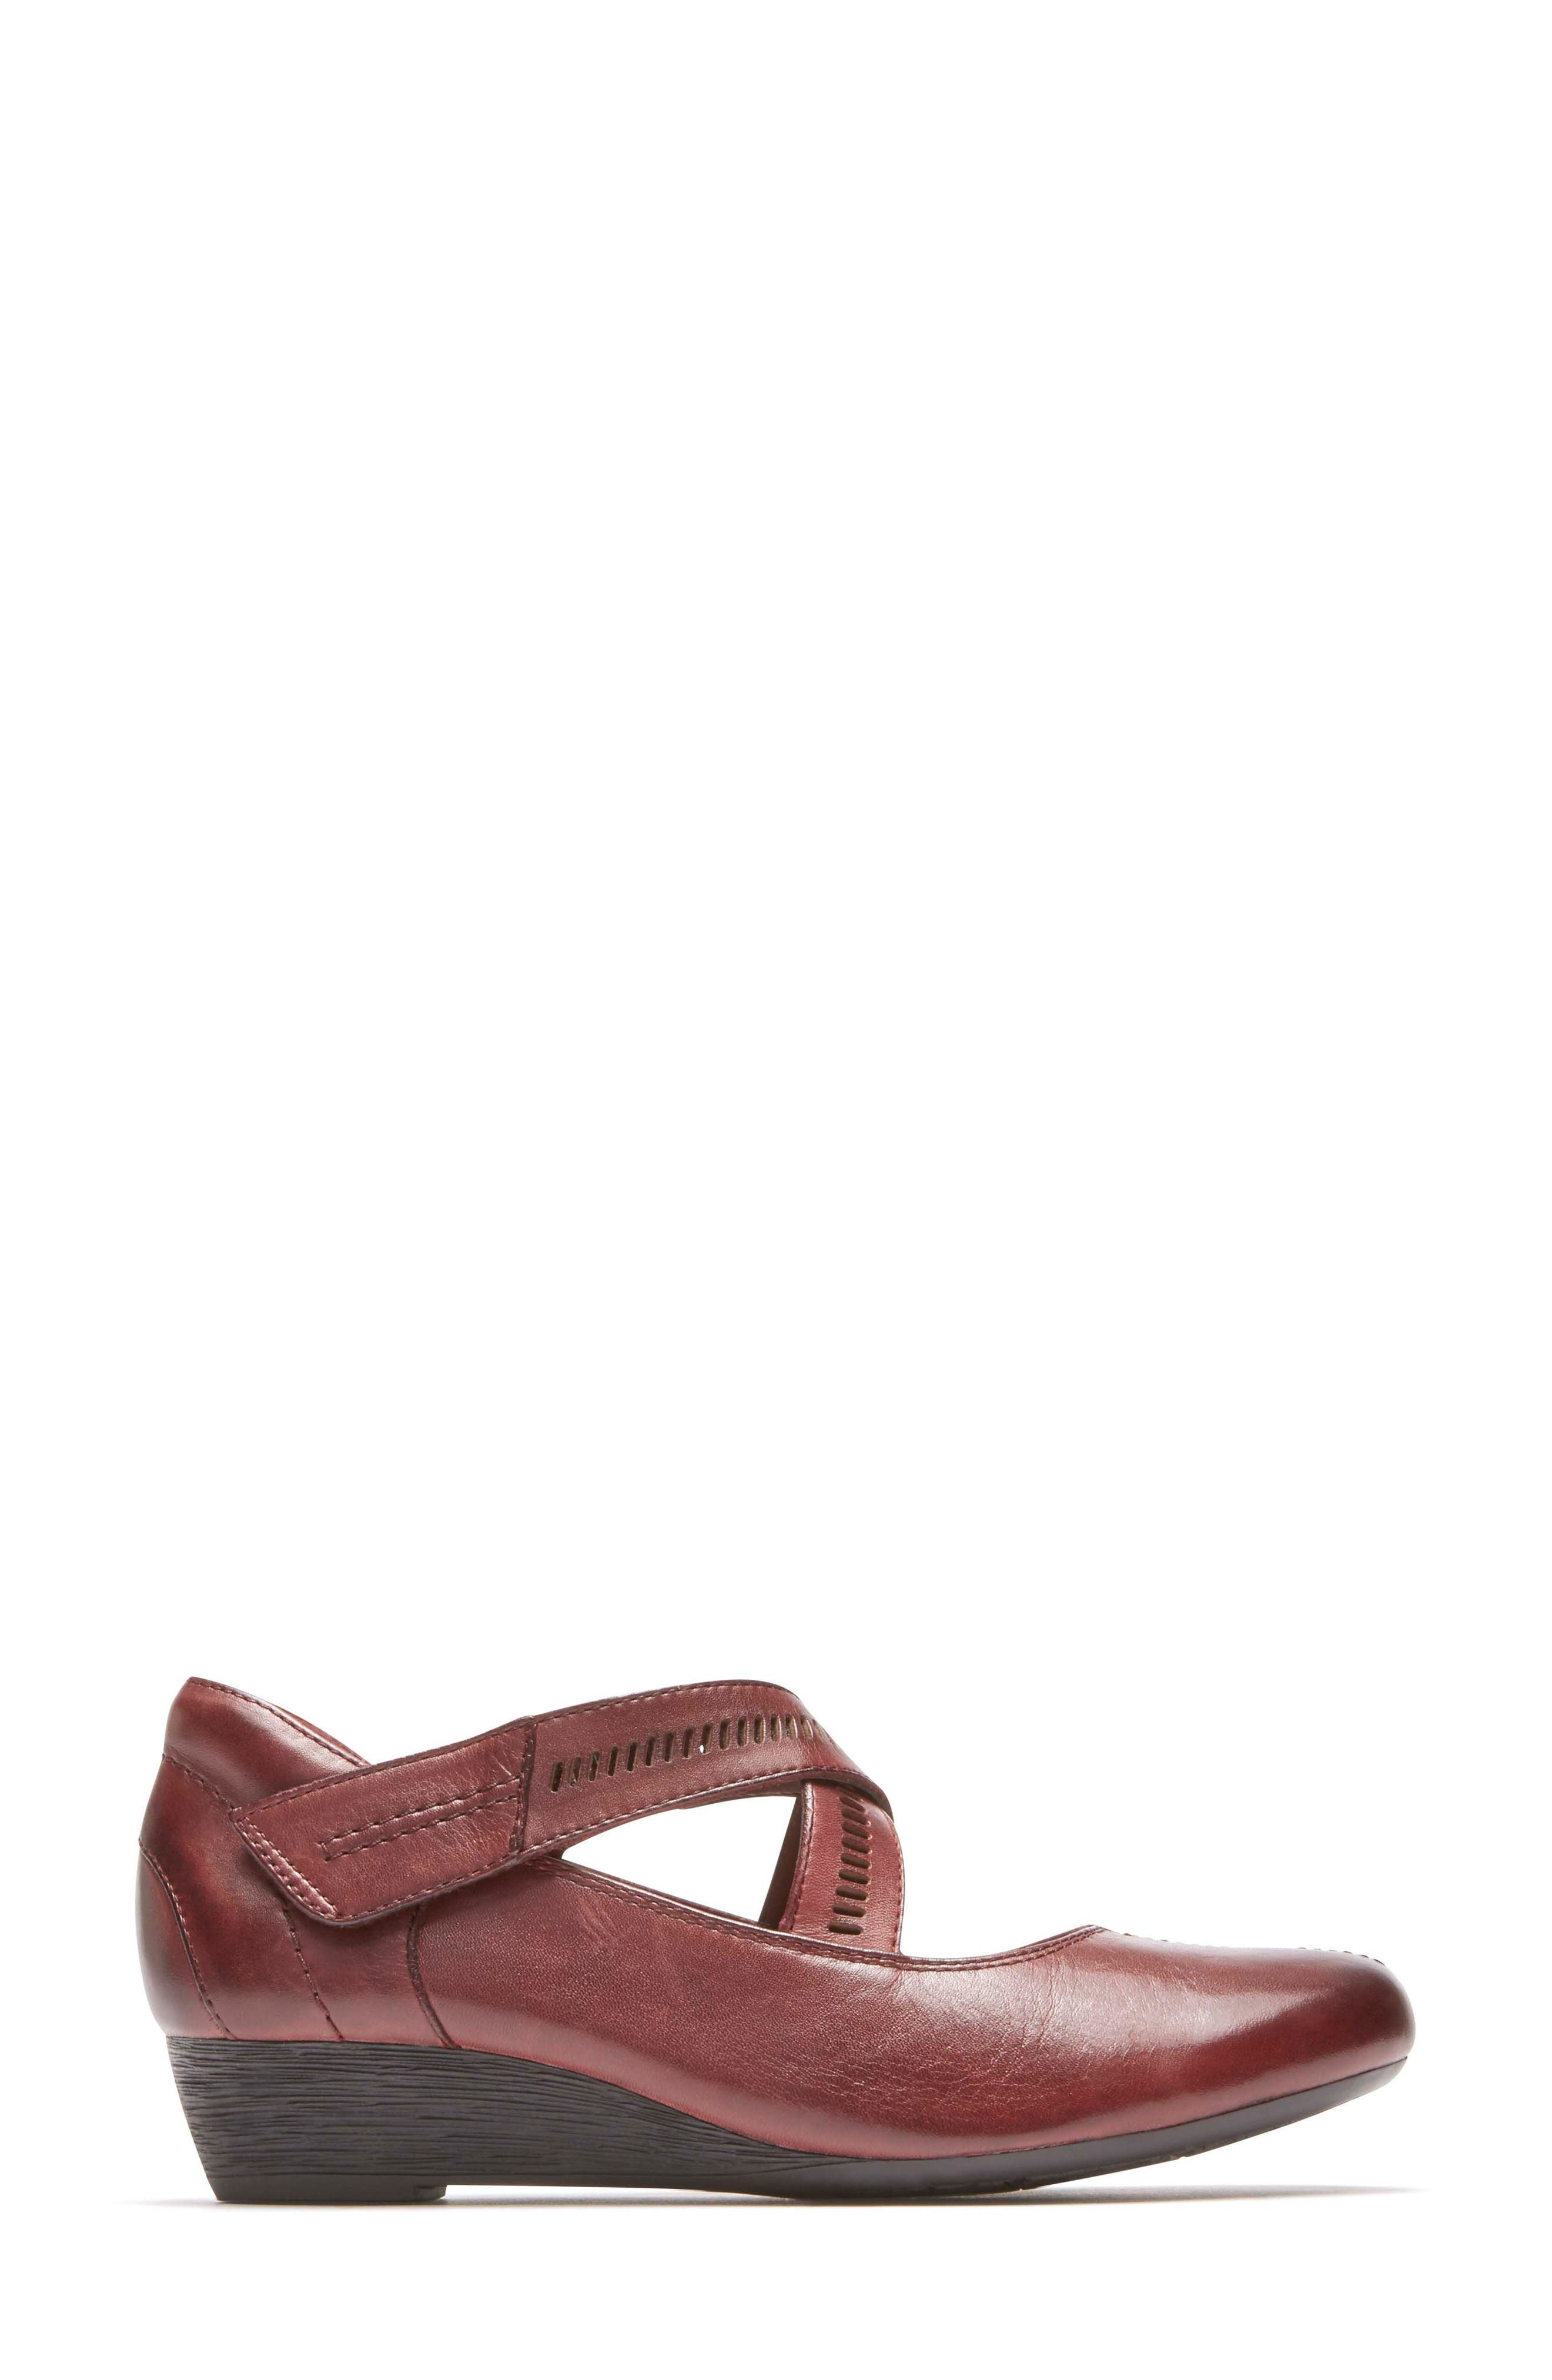 'Janet' Mary Jane Wedge,                             Alternate thumbnail 3, color,                             MERLOT LEATHER